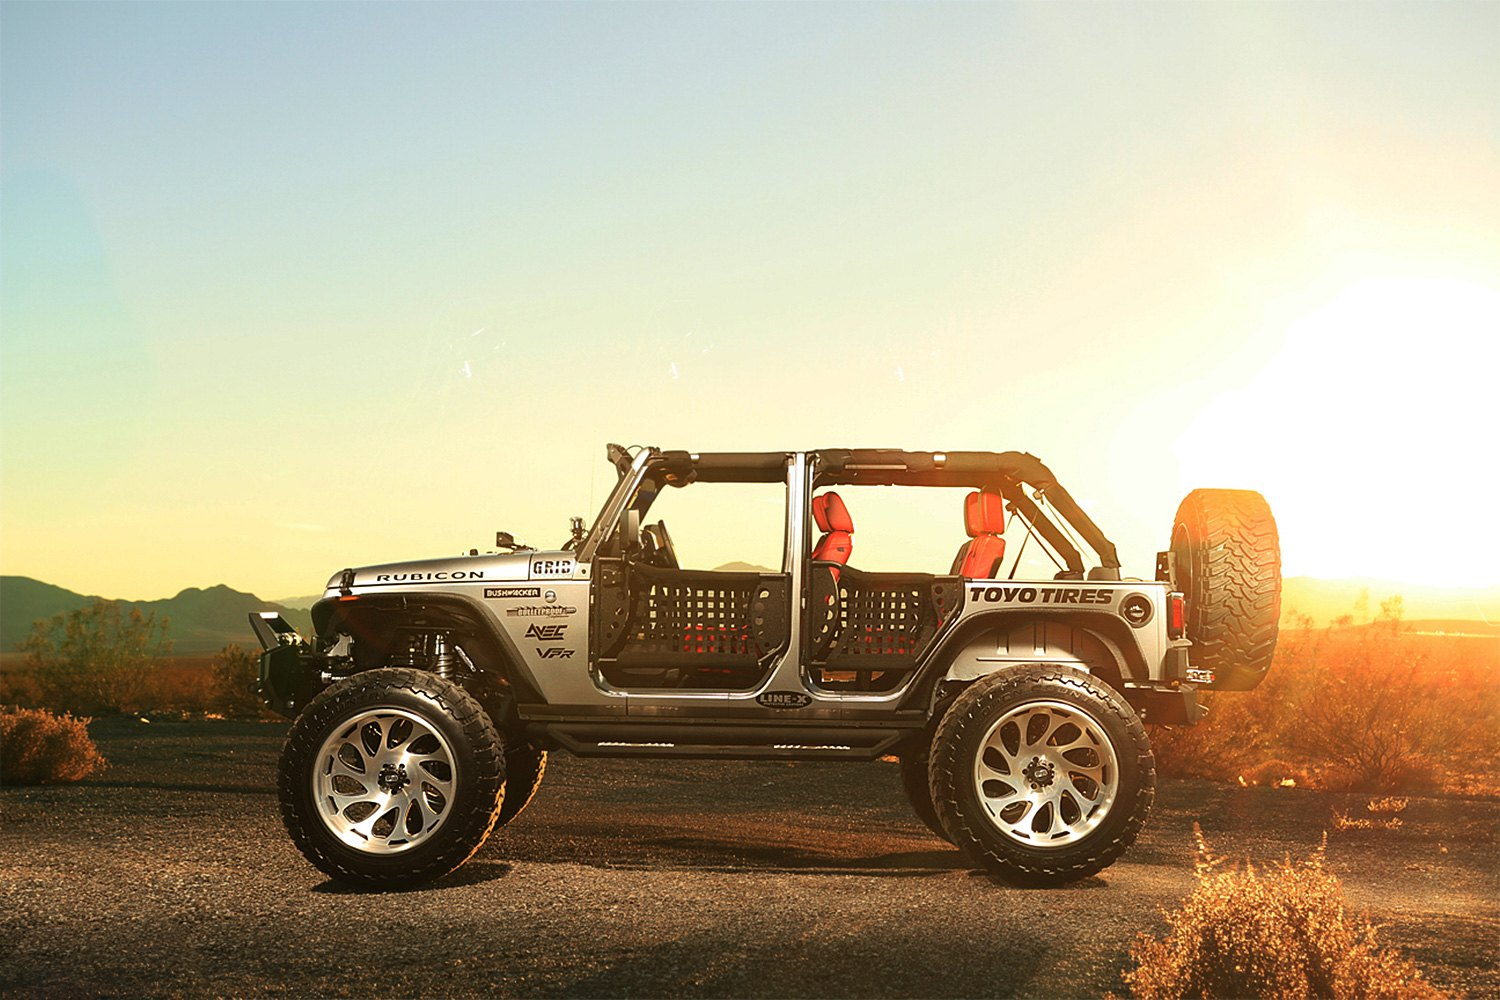 grid-off-road-gf10-brushed-black-accents-jeep-rubicon-2.jpg